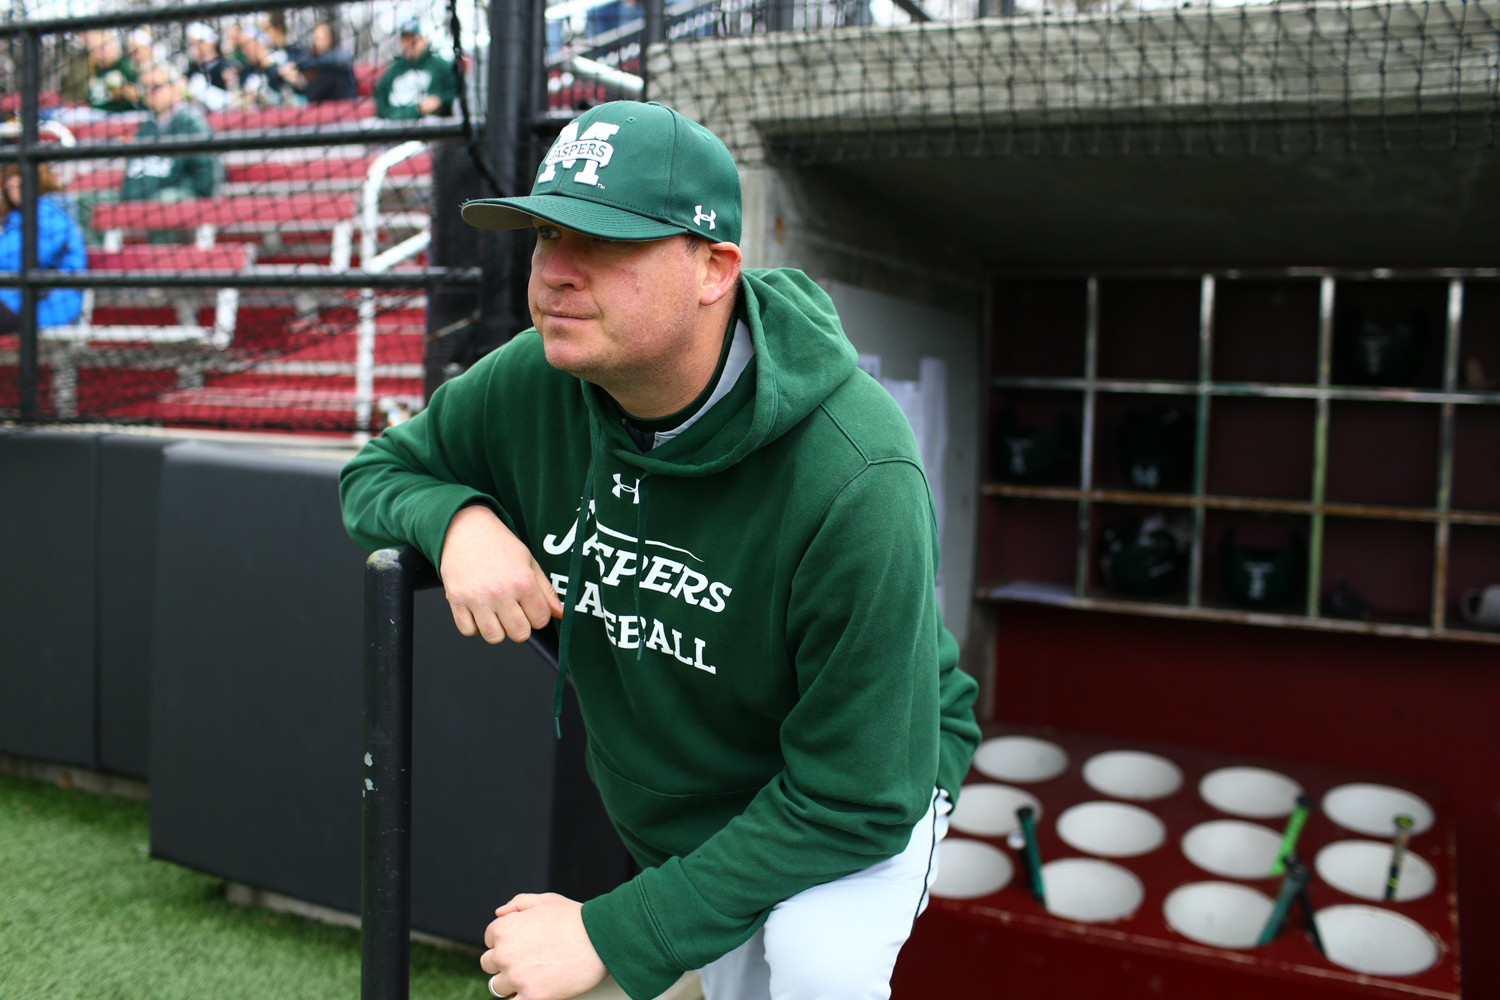 New Manhattan head baseball coach Mike Cole has designs on returning the Jaspers to contender status in the Metro Atlantic Athletic Conference.